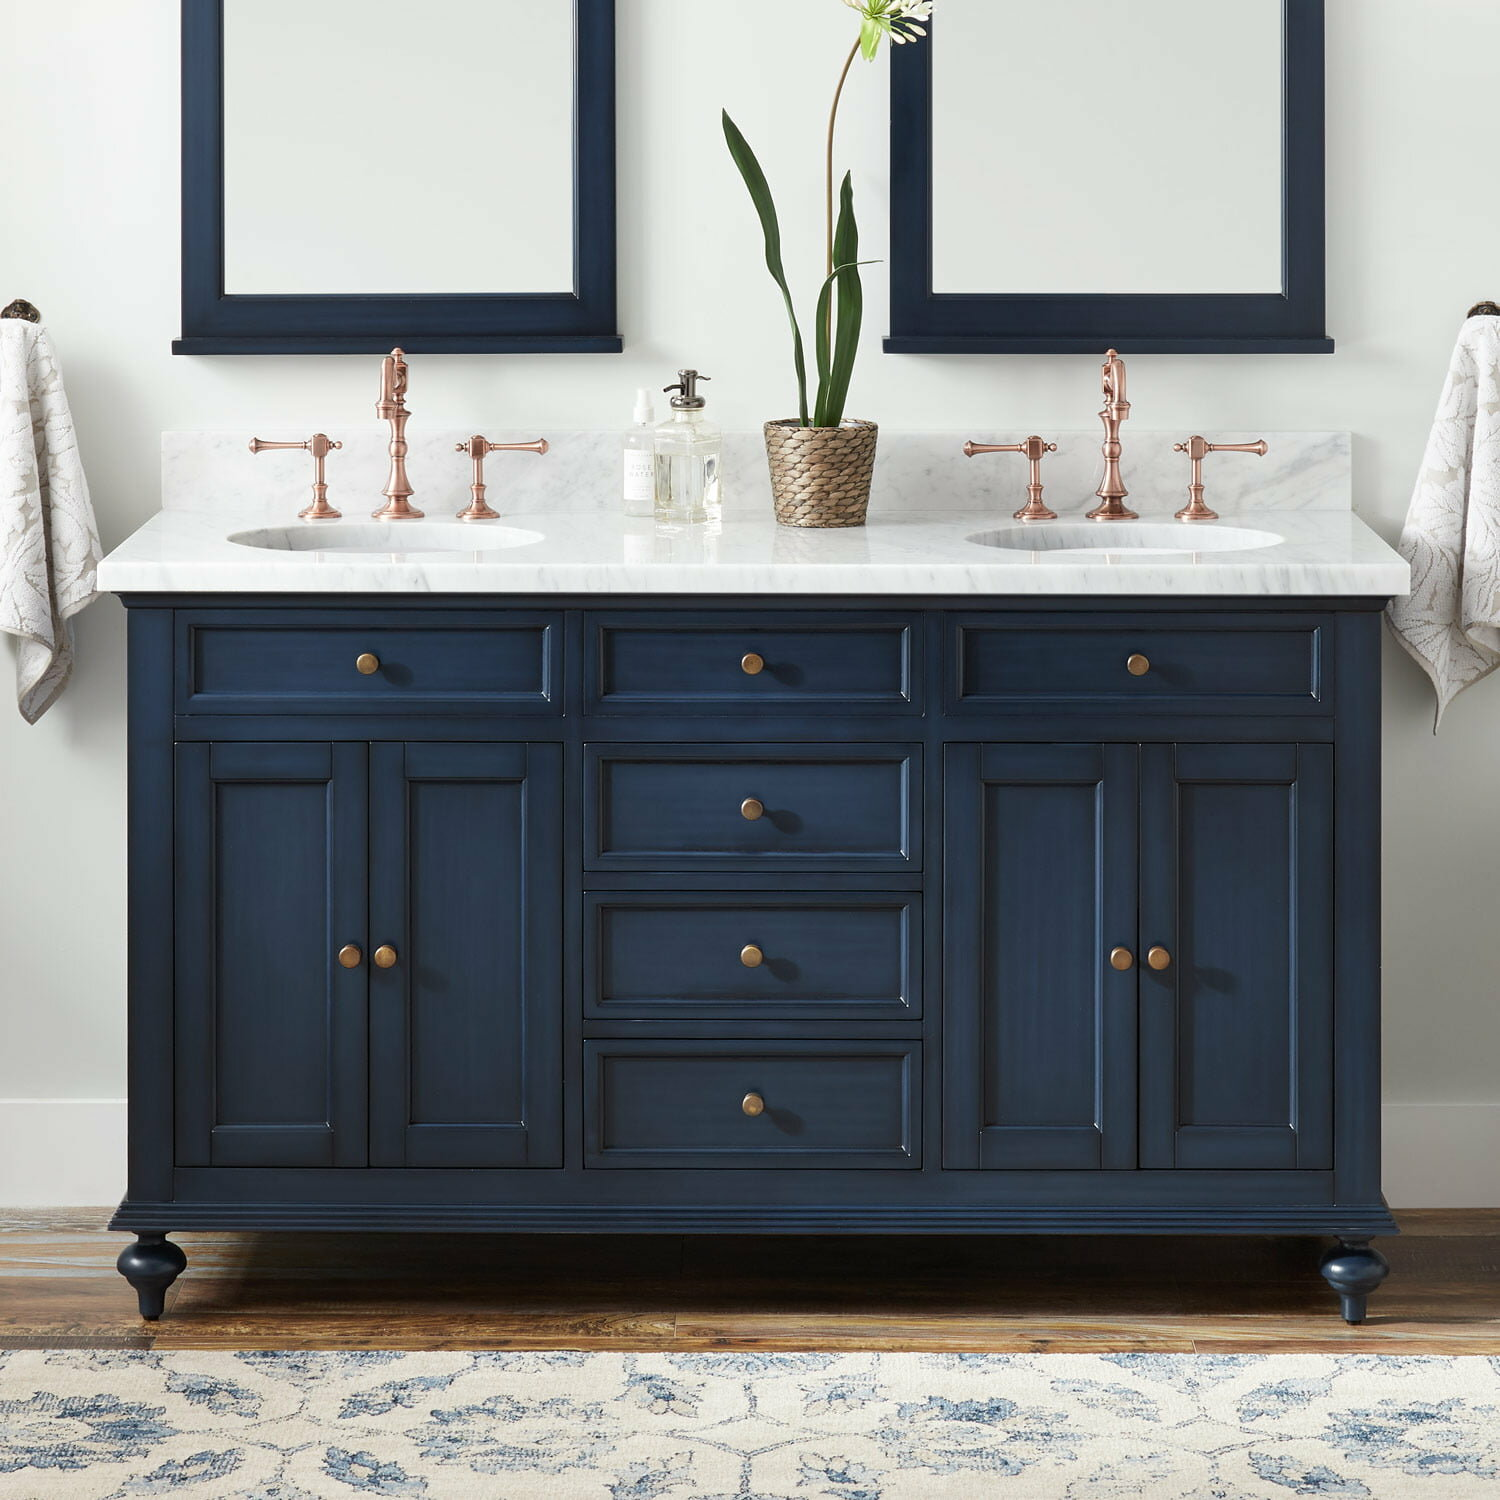 Signature Hardware Keller Marble 61 Double Bathroom Vanity Set Reviews Wayfair